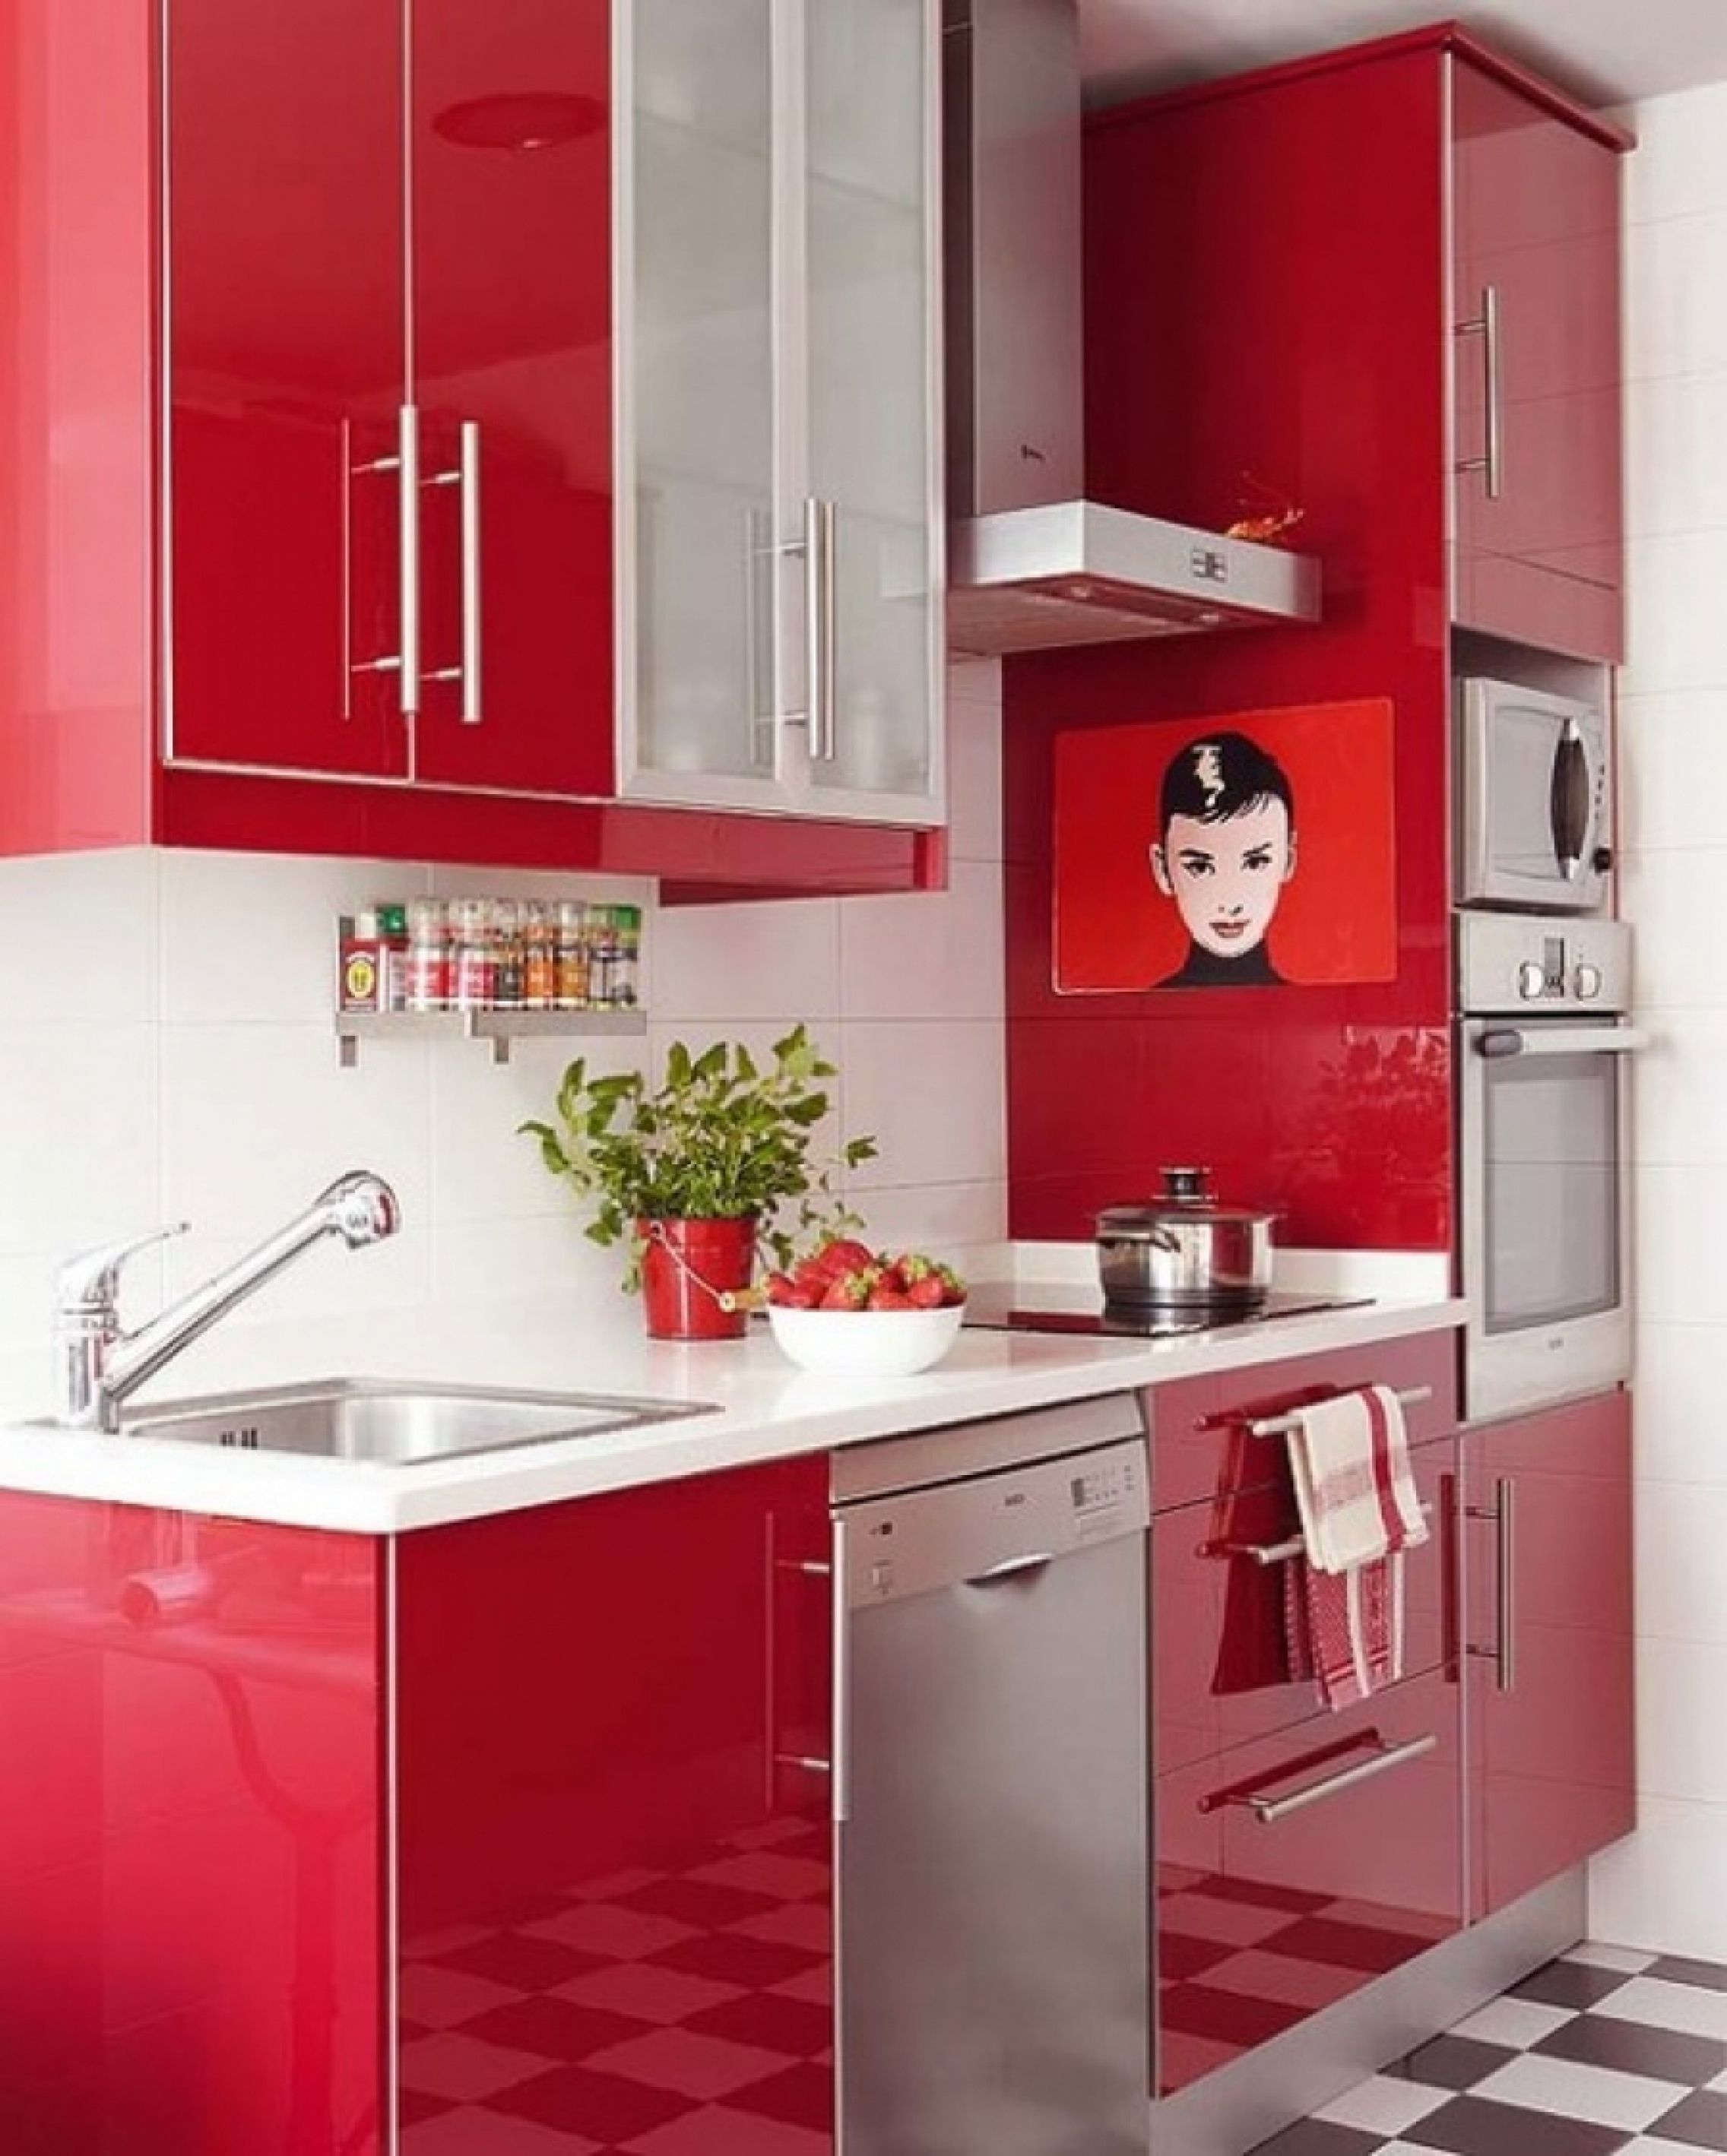 Red Kitchen Accessories Ideas Part - 42: 35 Top Red Kitchen Design Ideas Trends To Watch For In 2018